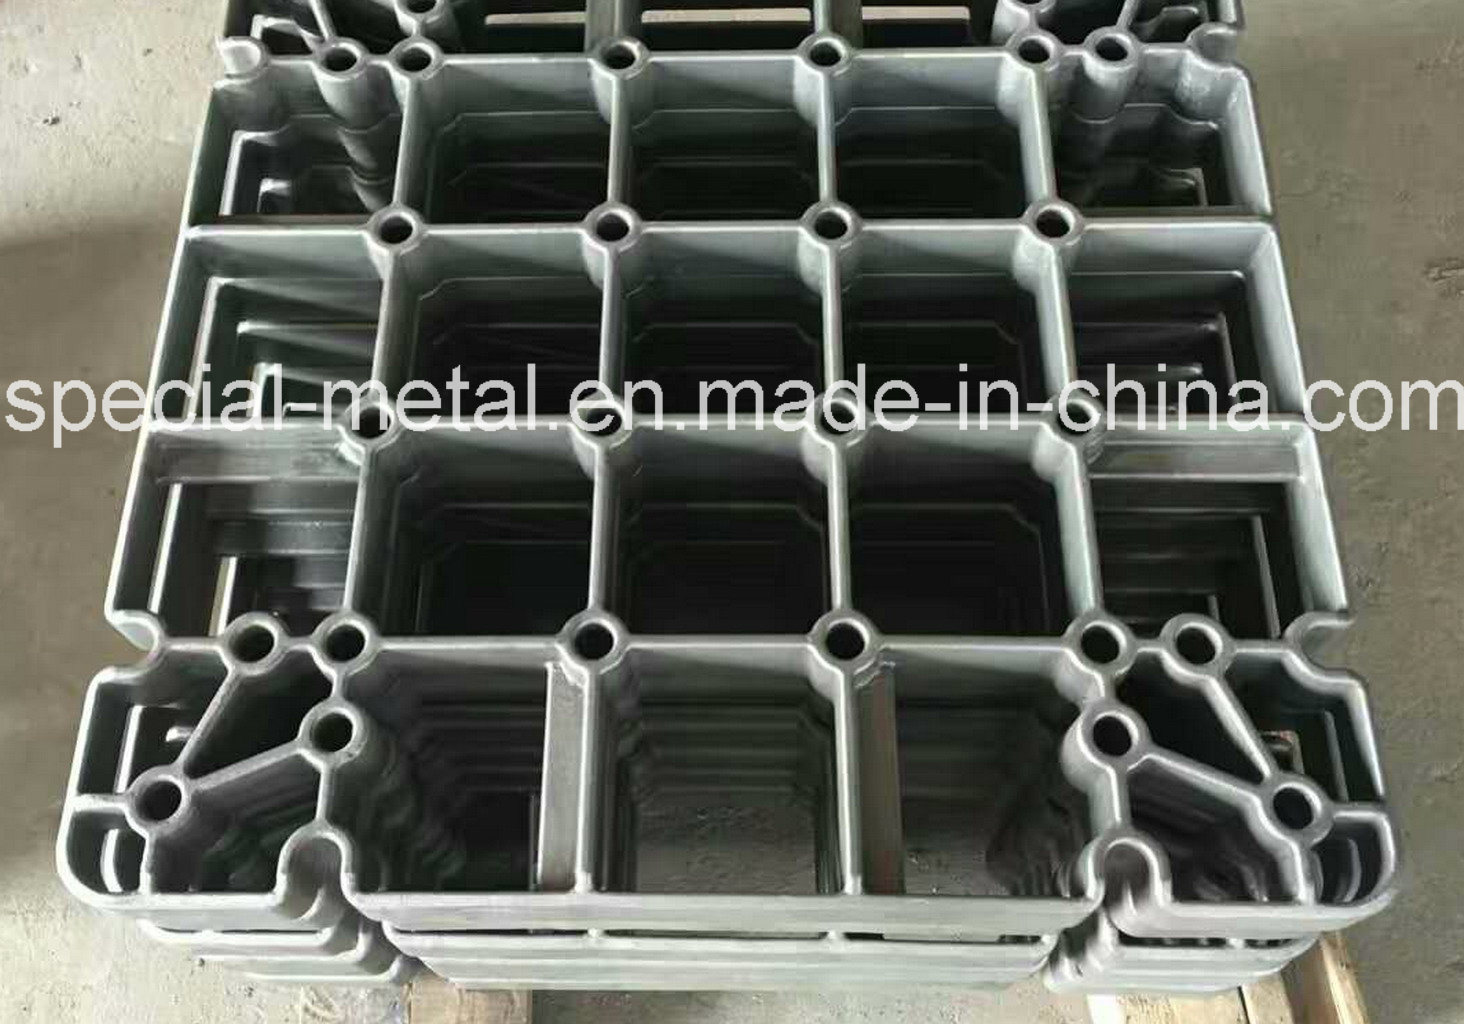 Precision Casting HK40 HP40 Heat Treatment Furnace Tray